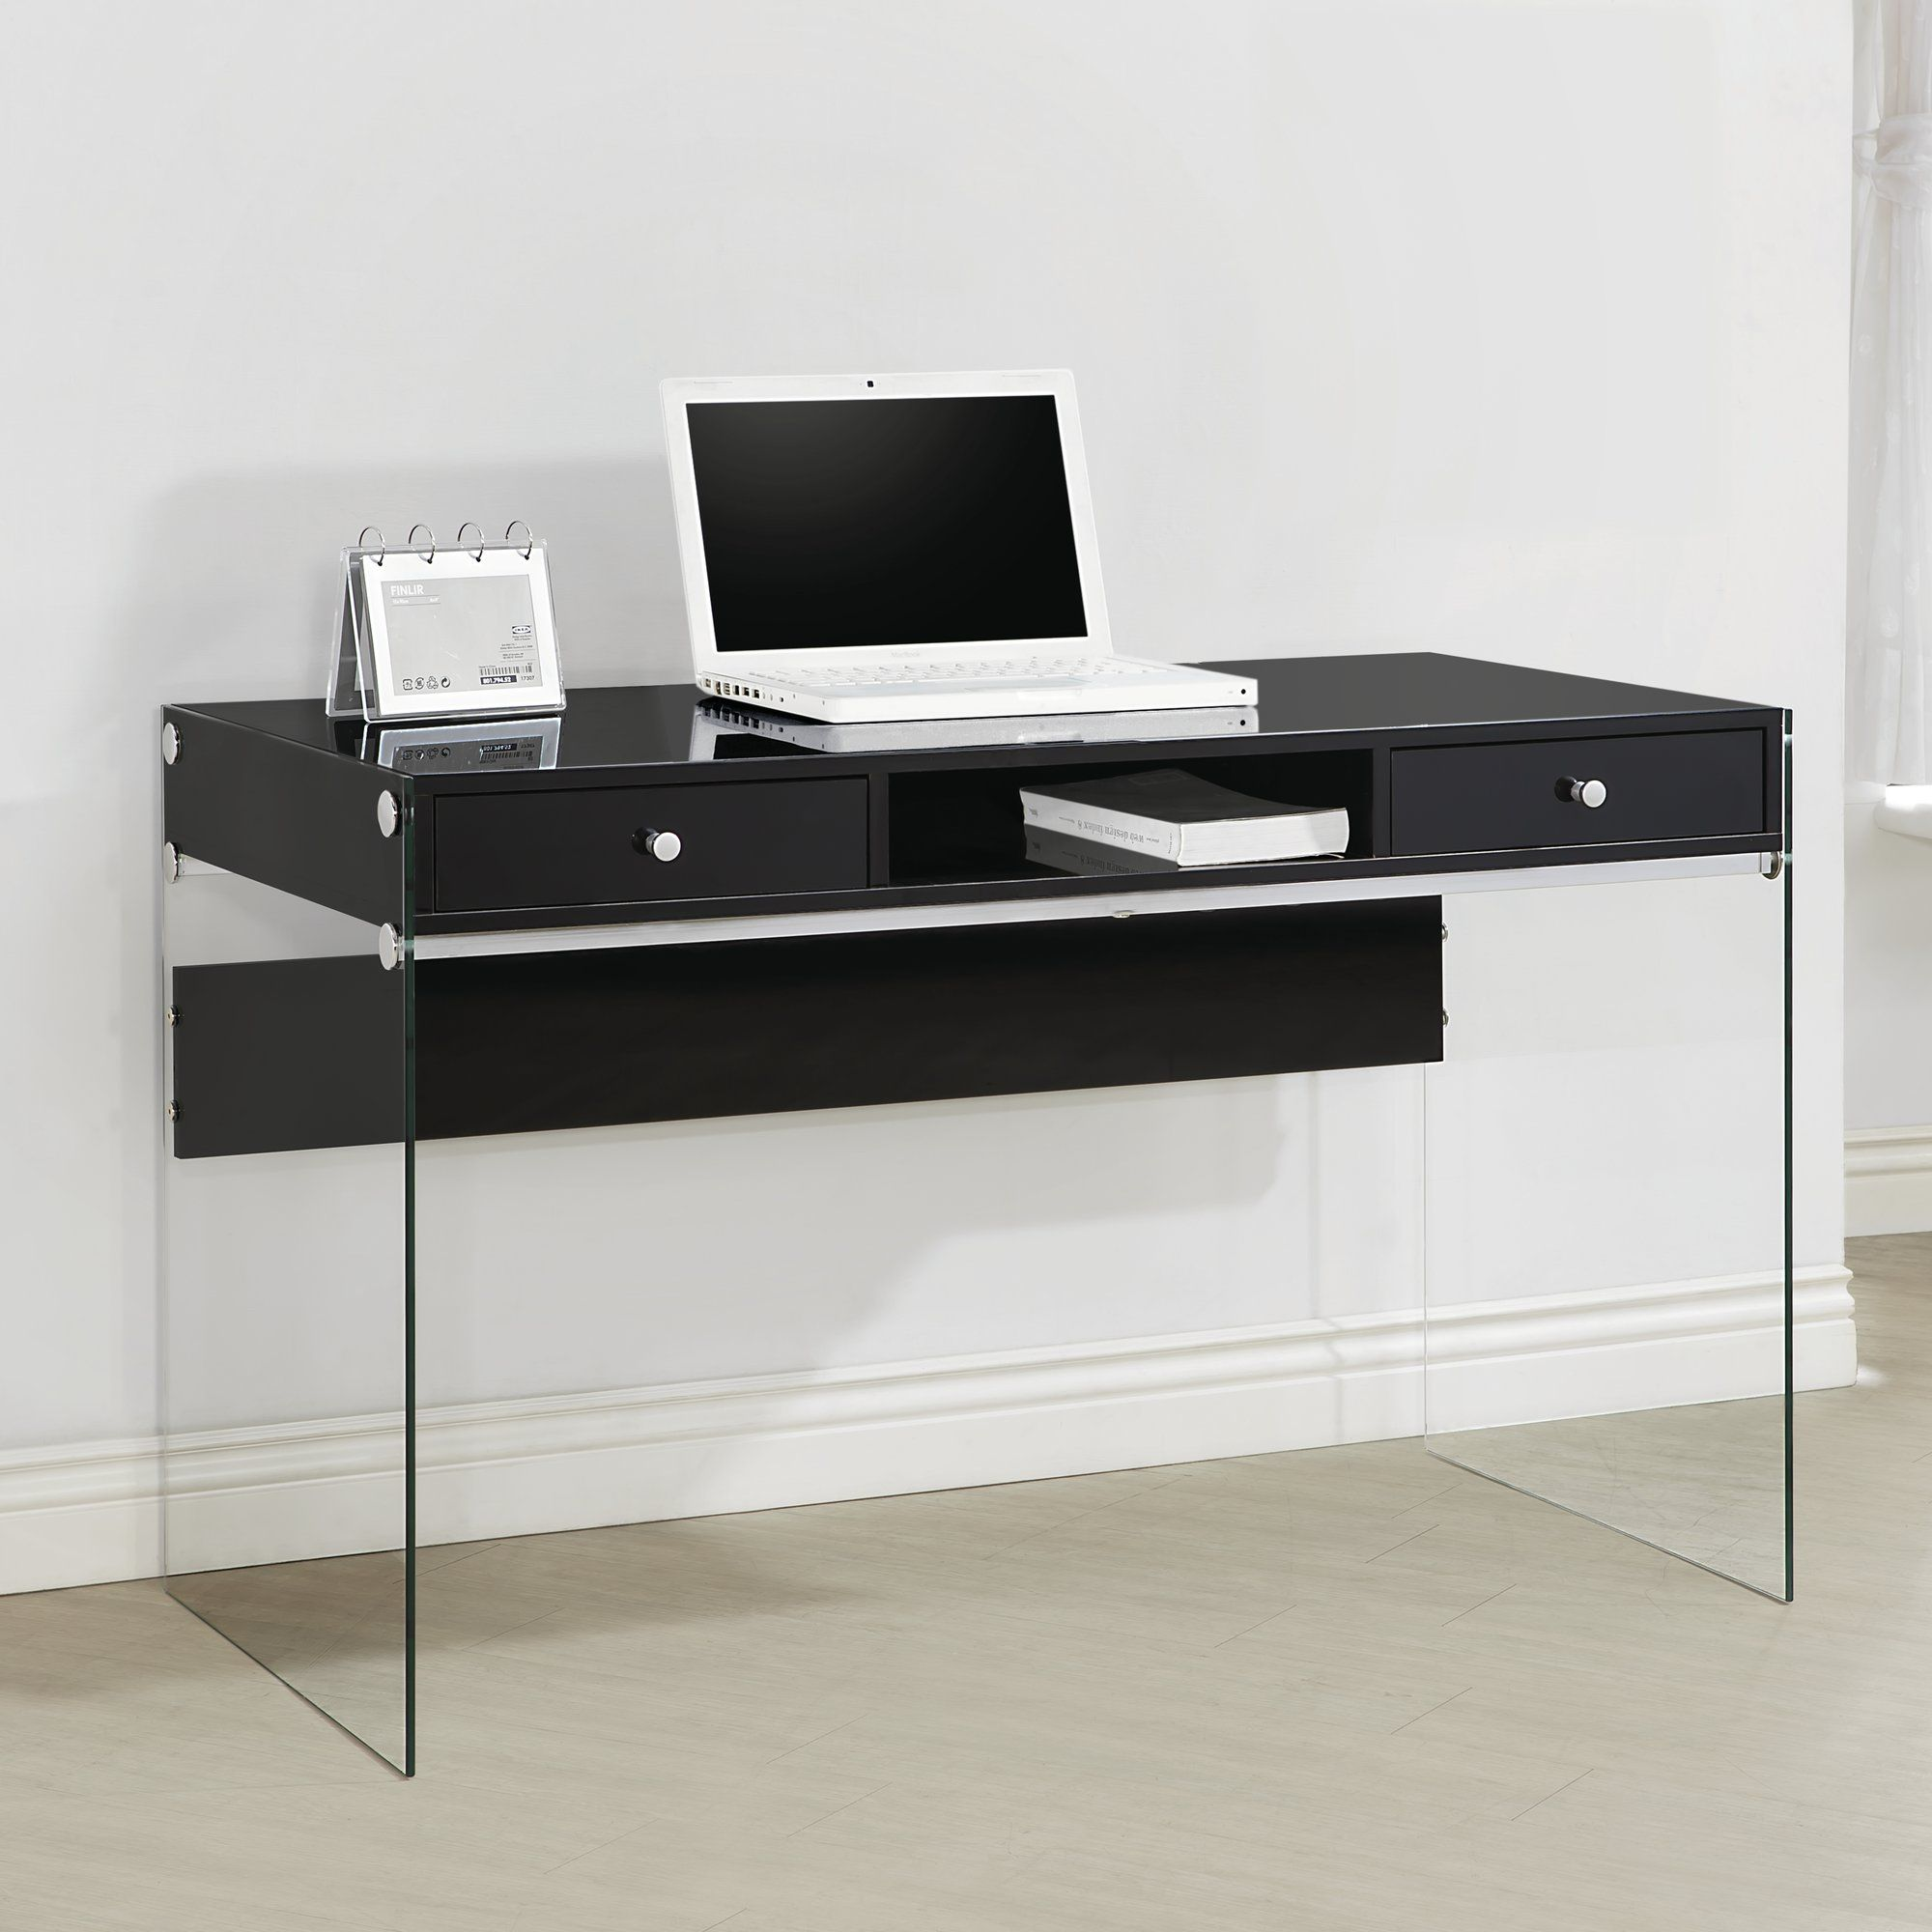 - Grace Desk Writing Desk With Drawers, Desk With Drawers, Home